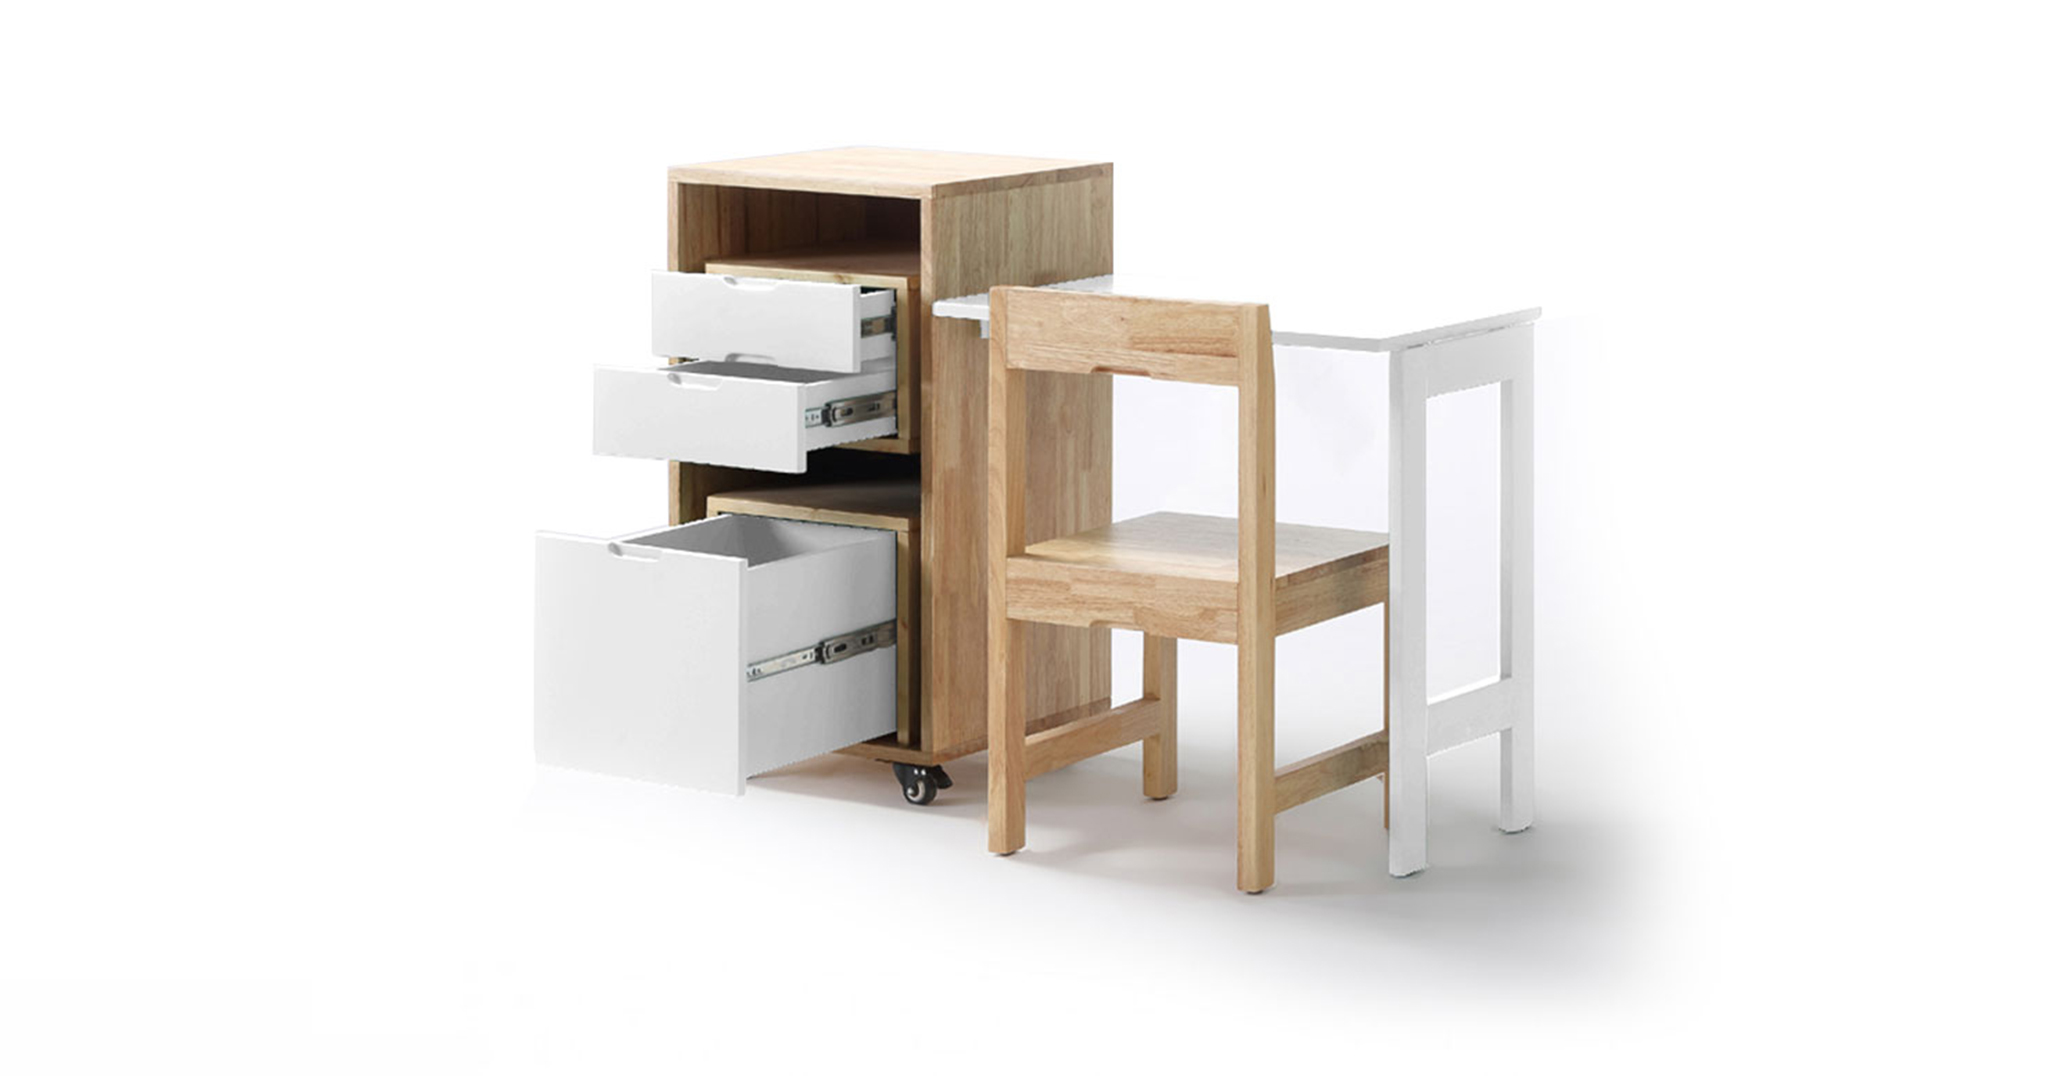 Muebles multiusos, una forma inteligente de decorar